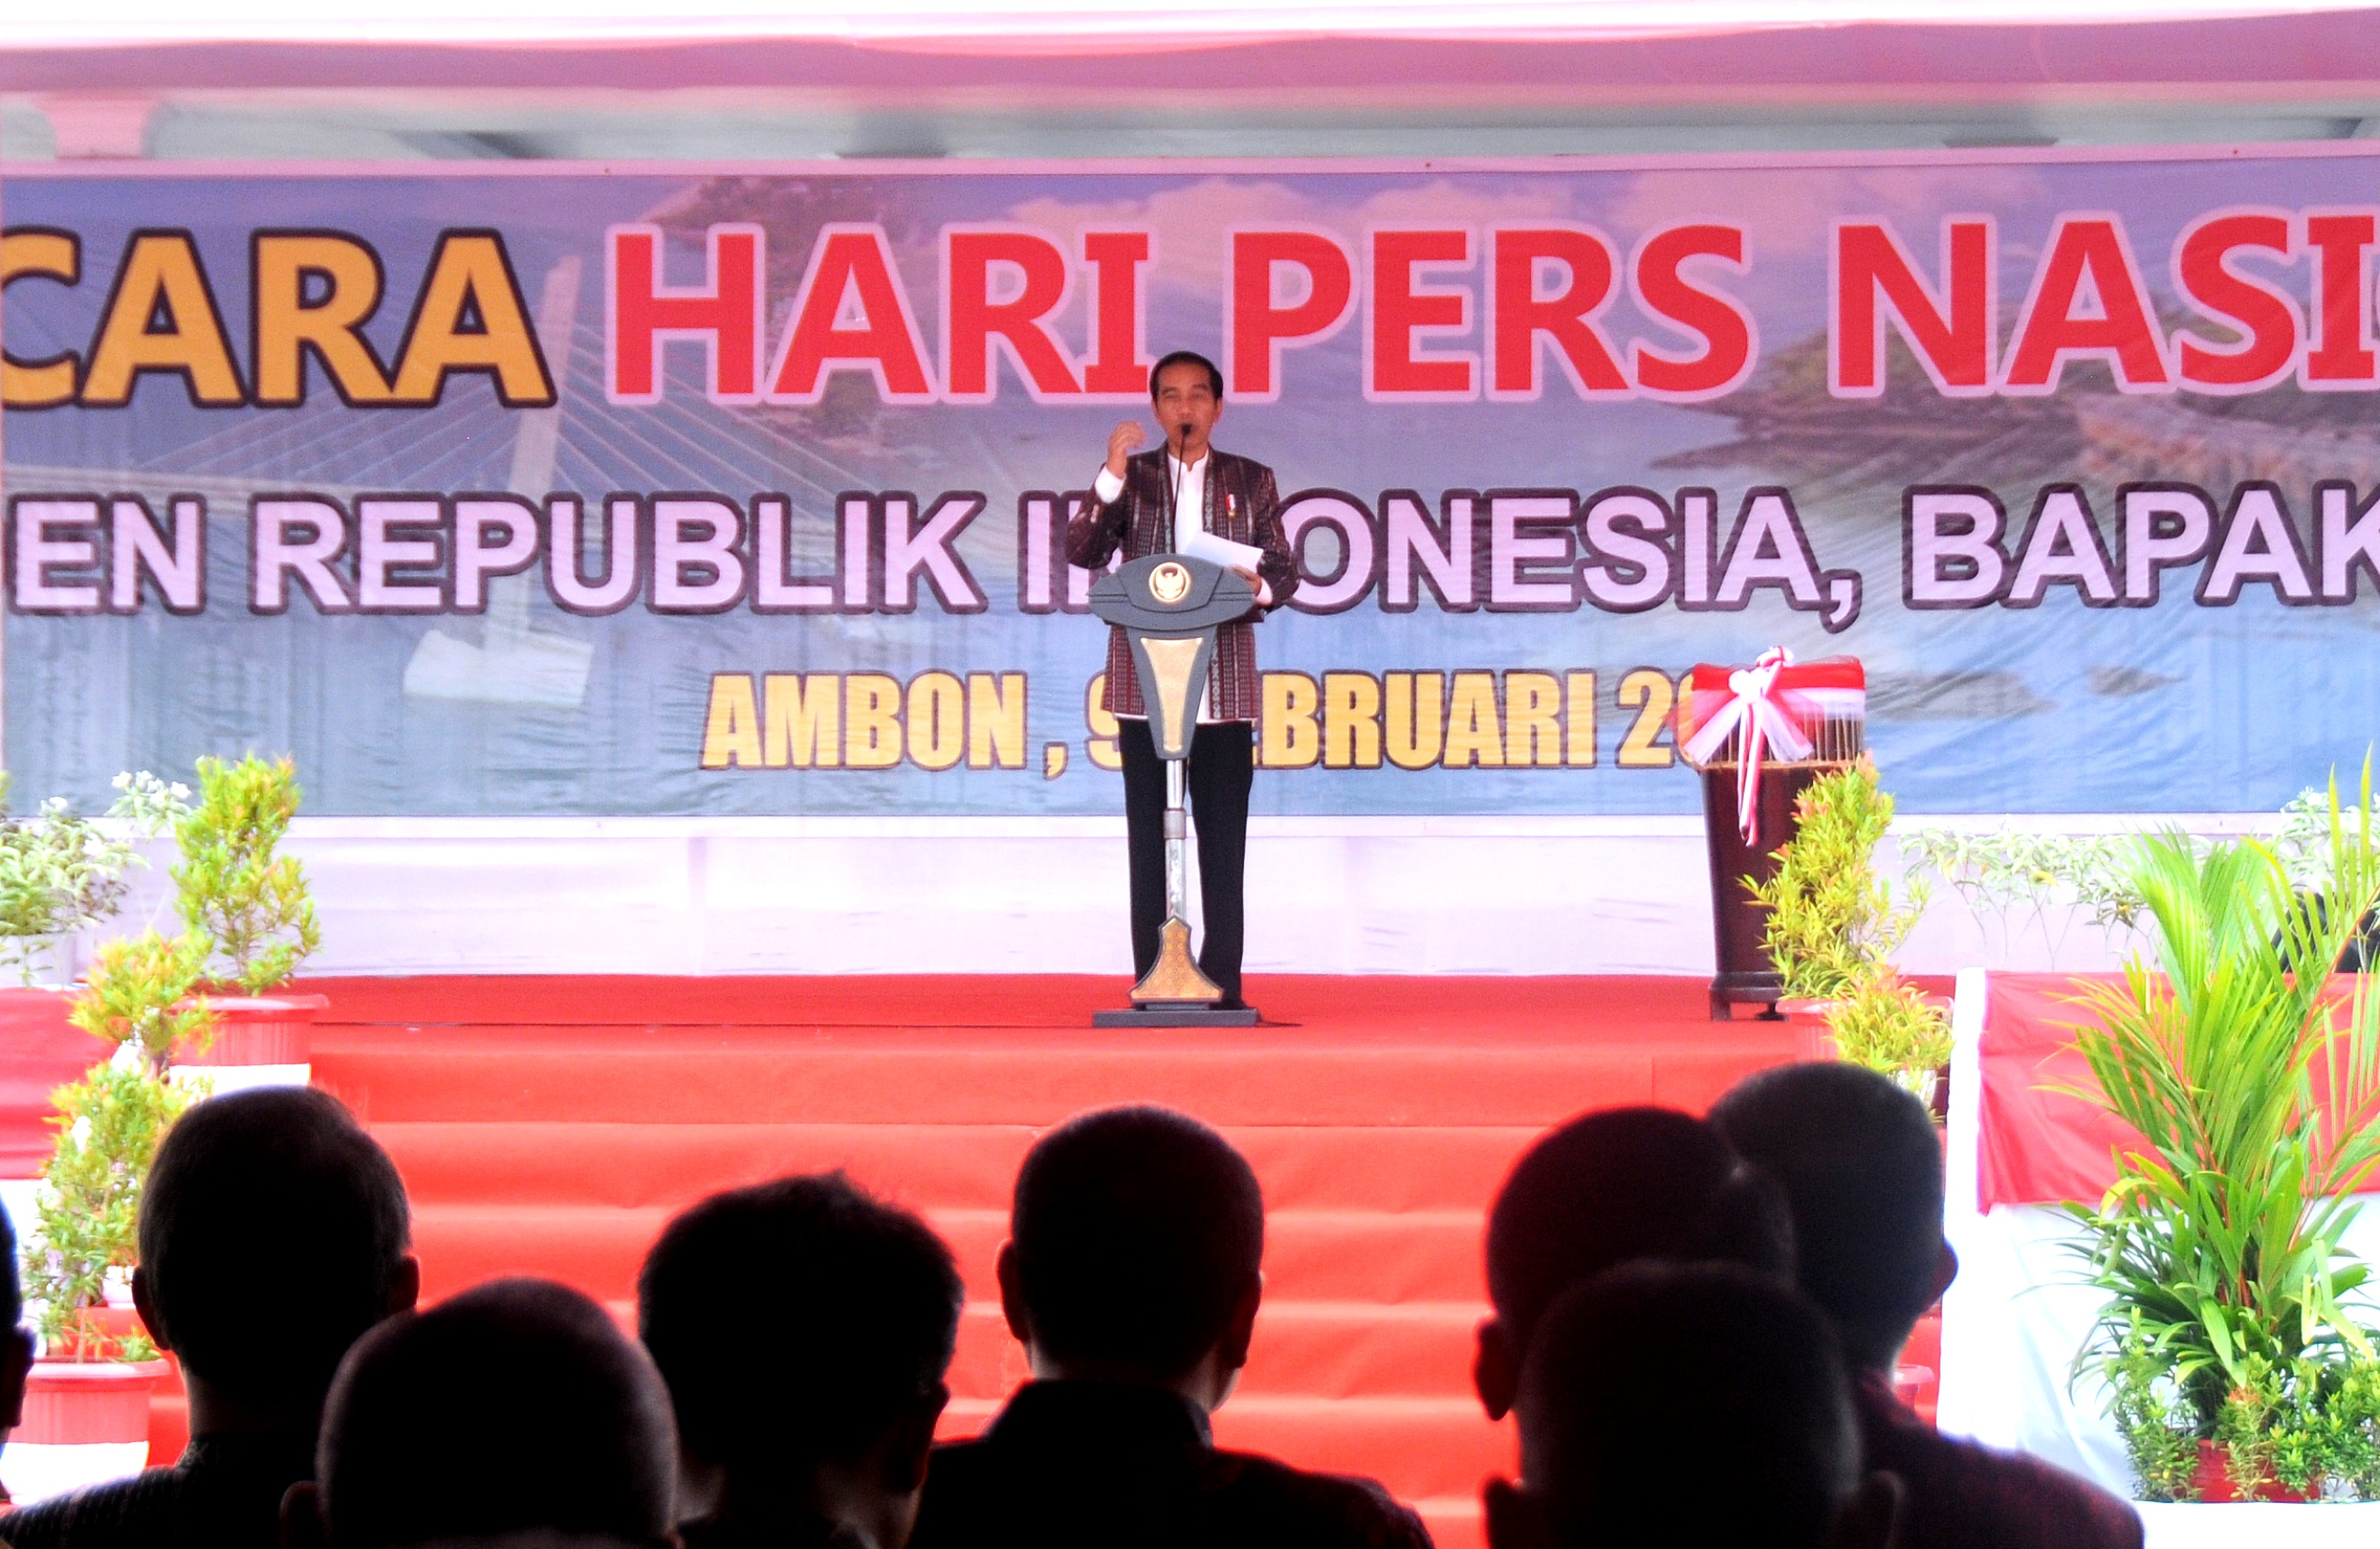 President Jokowi delivers a speech at the Peak Commemoration of the 2017 National Press Day in Ambon, Maluku, Thursday (9/2) morning. (Photo: PR/Agung)